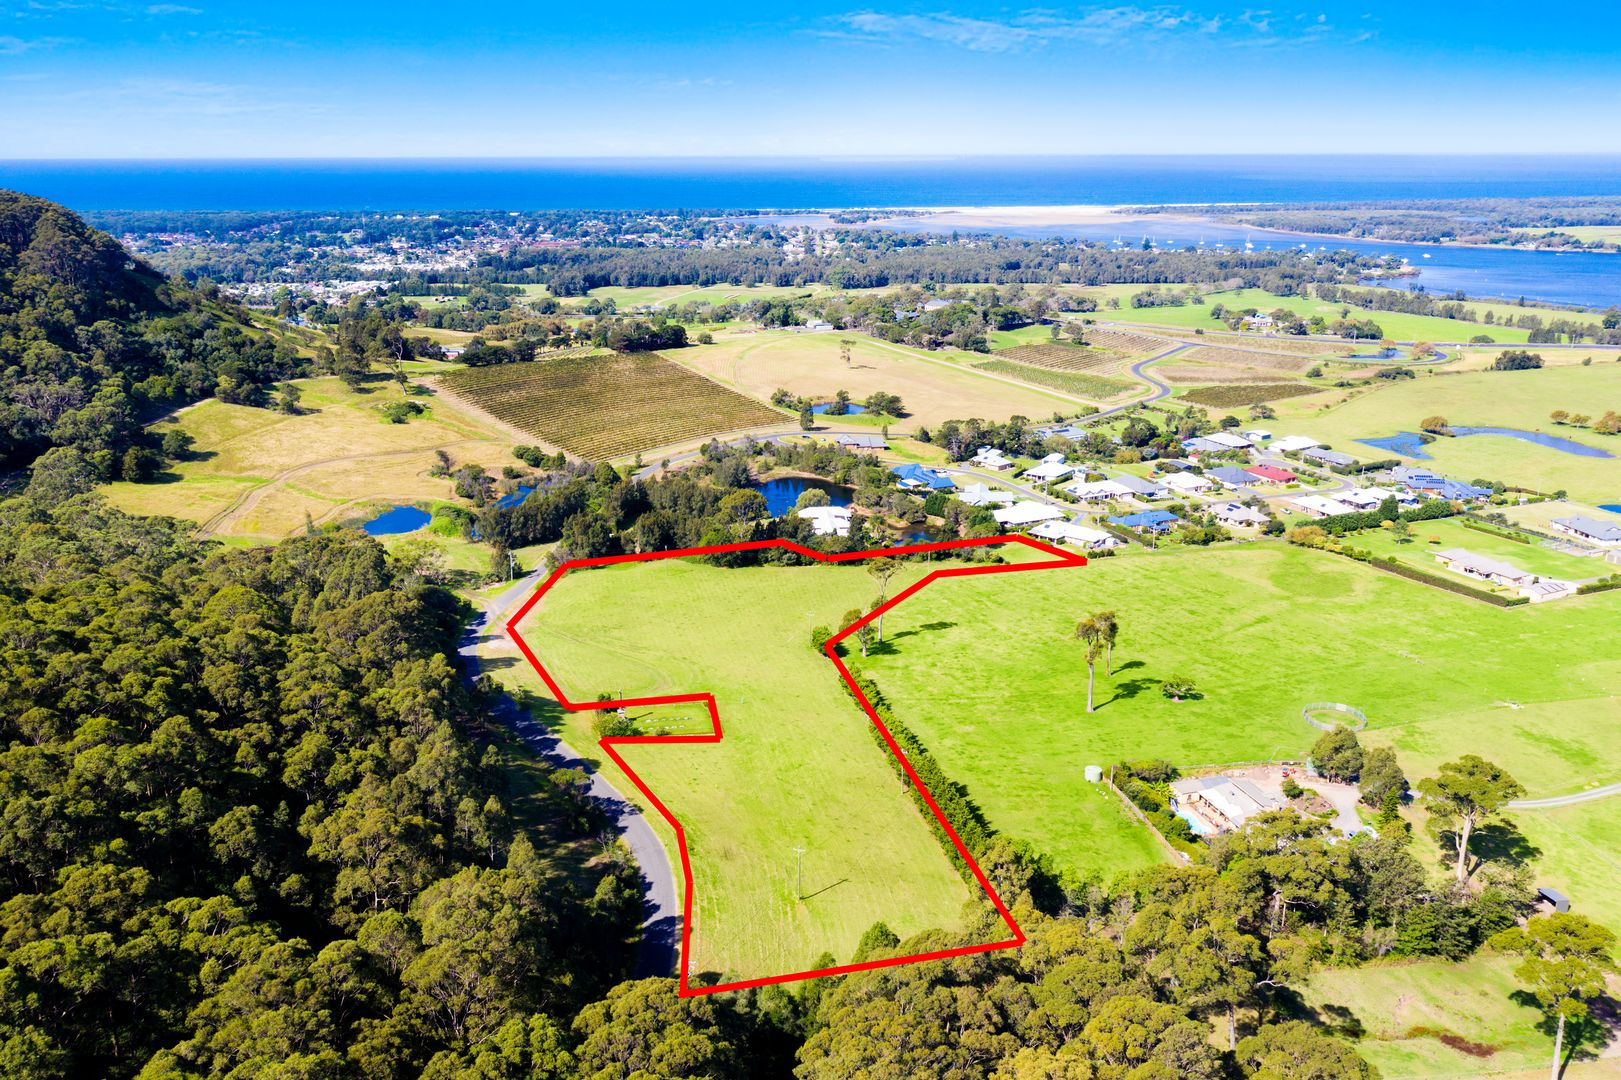 Lot 1001 Edward Wollstonecraft Lane, Coolangatta NSW 2535, Image 0